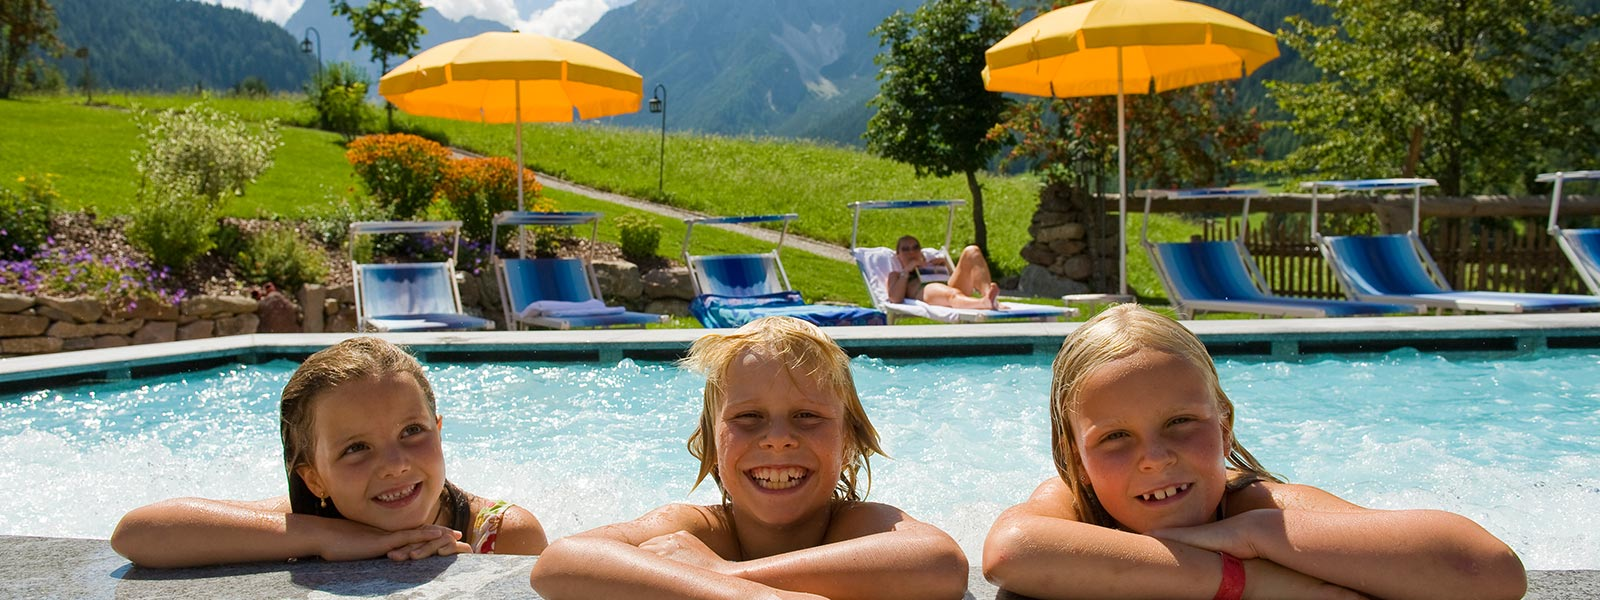 Family Resort Rainer at a glance